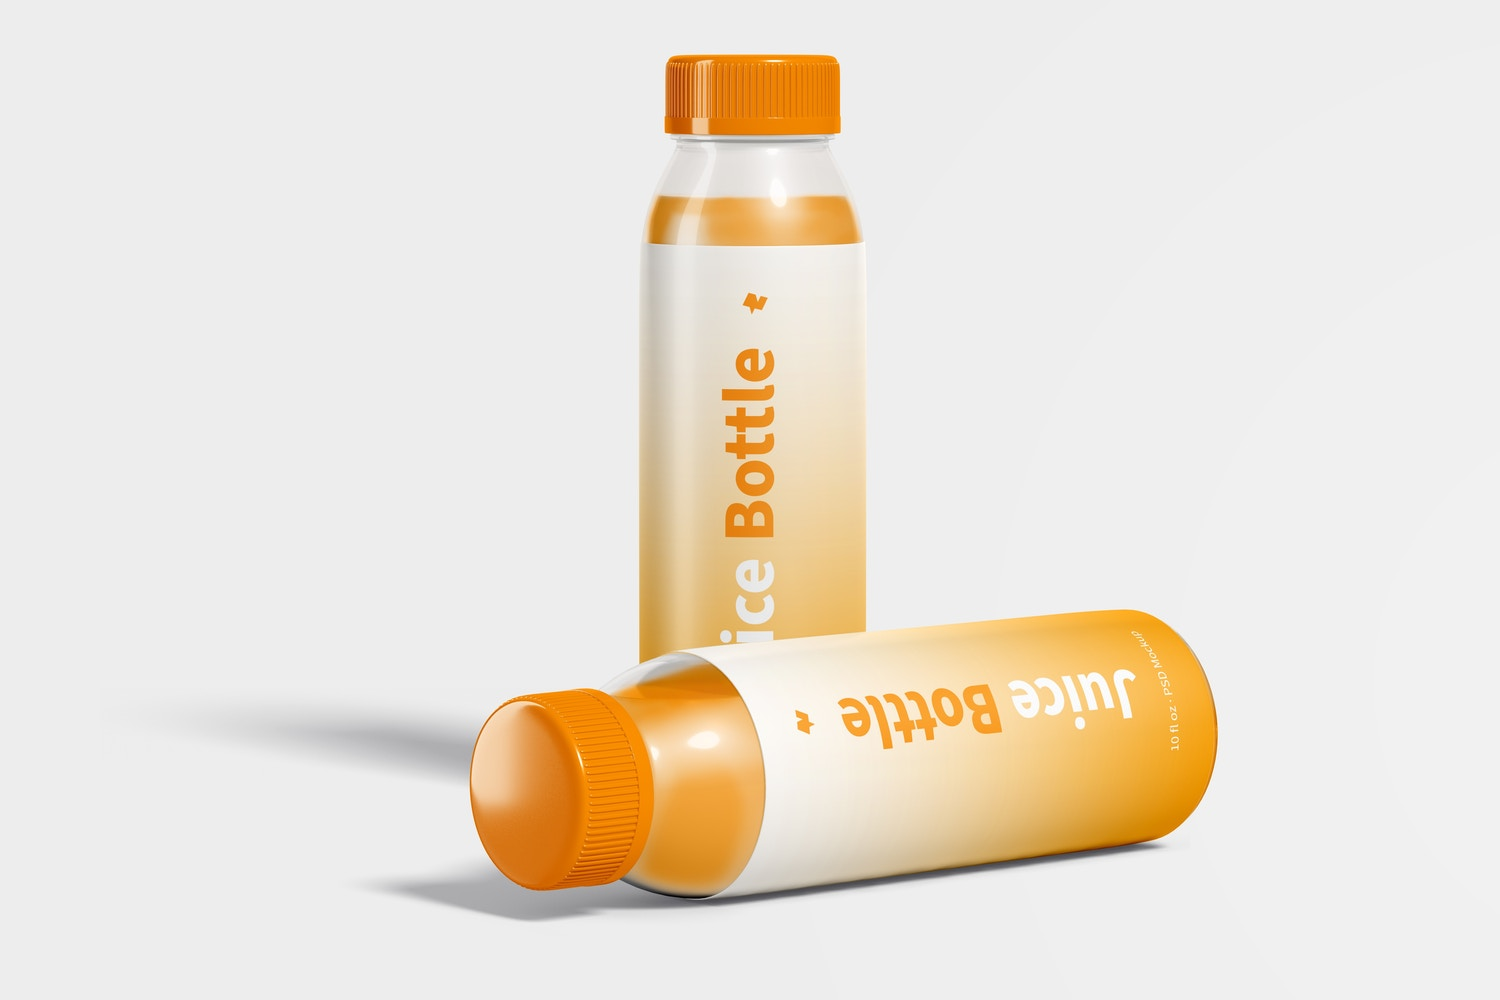 10 oz Clear PET Juice Bottles Mockup, Standing and Dropped